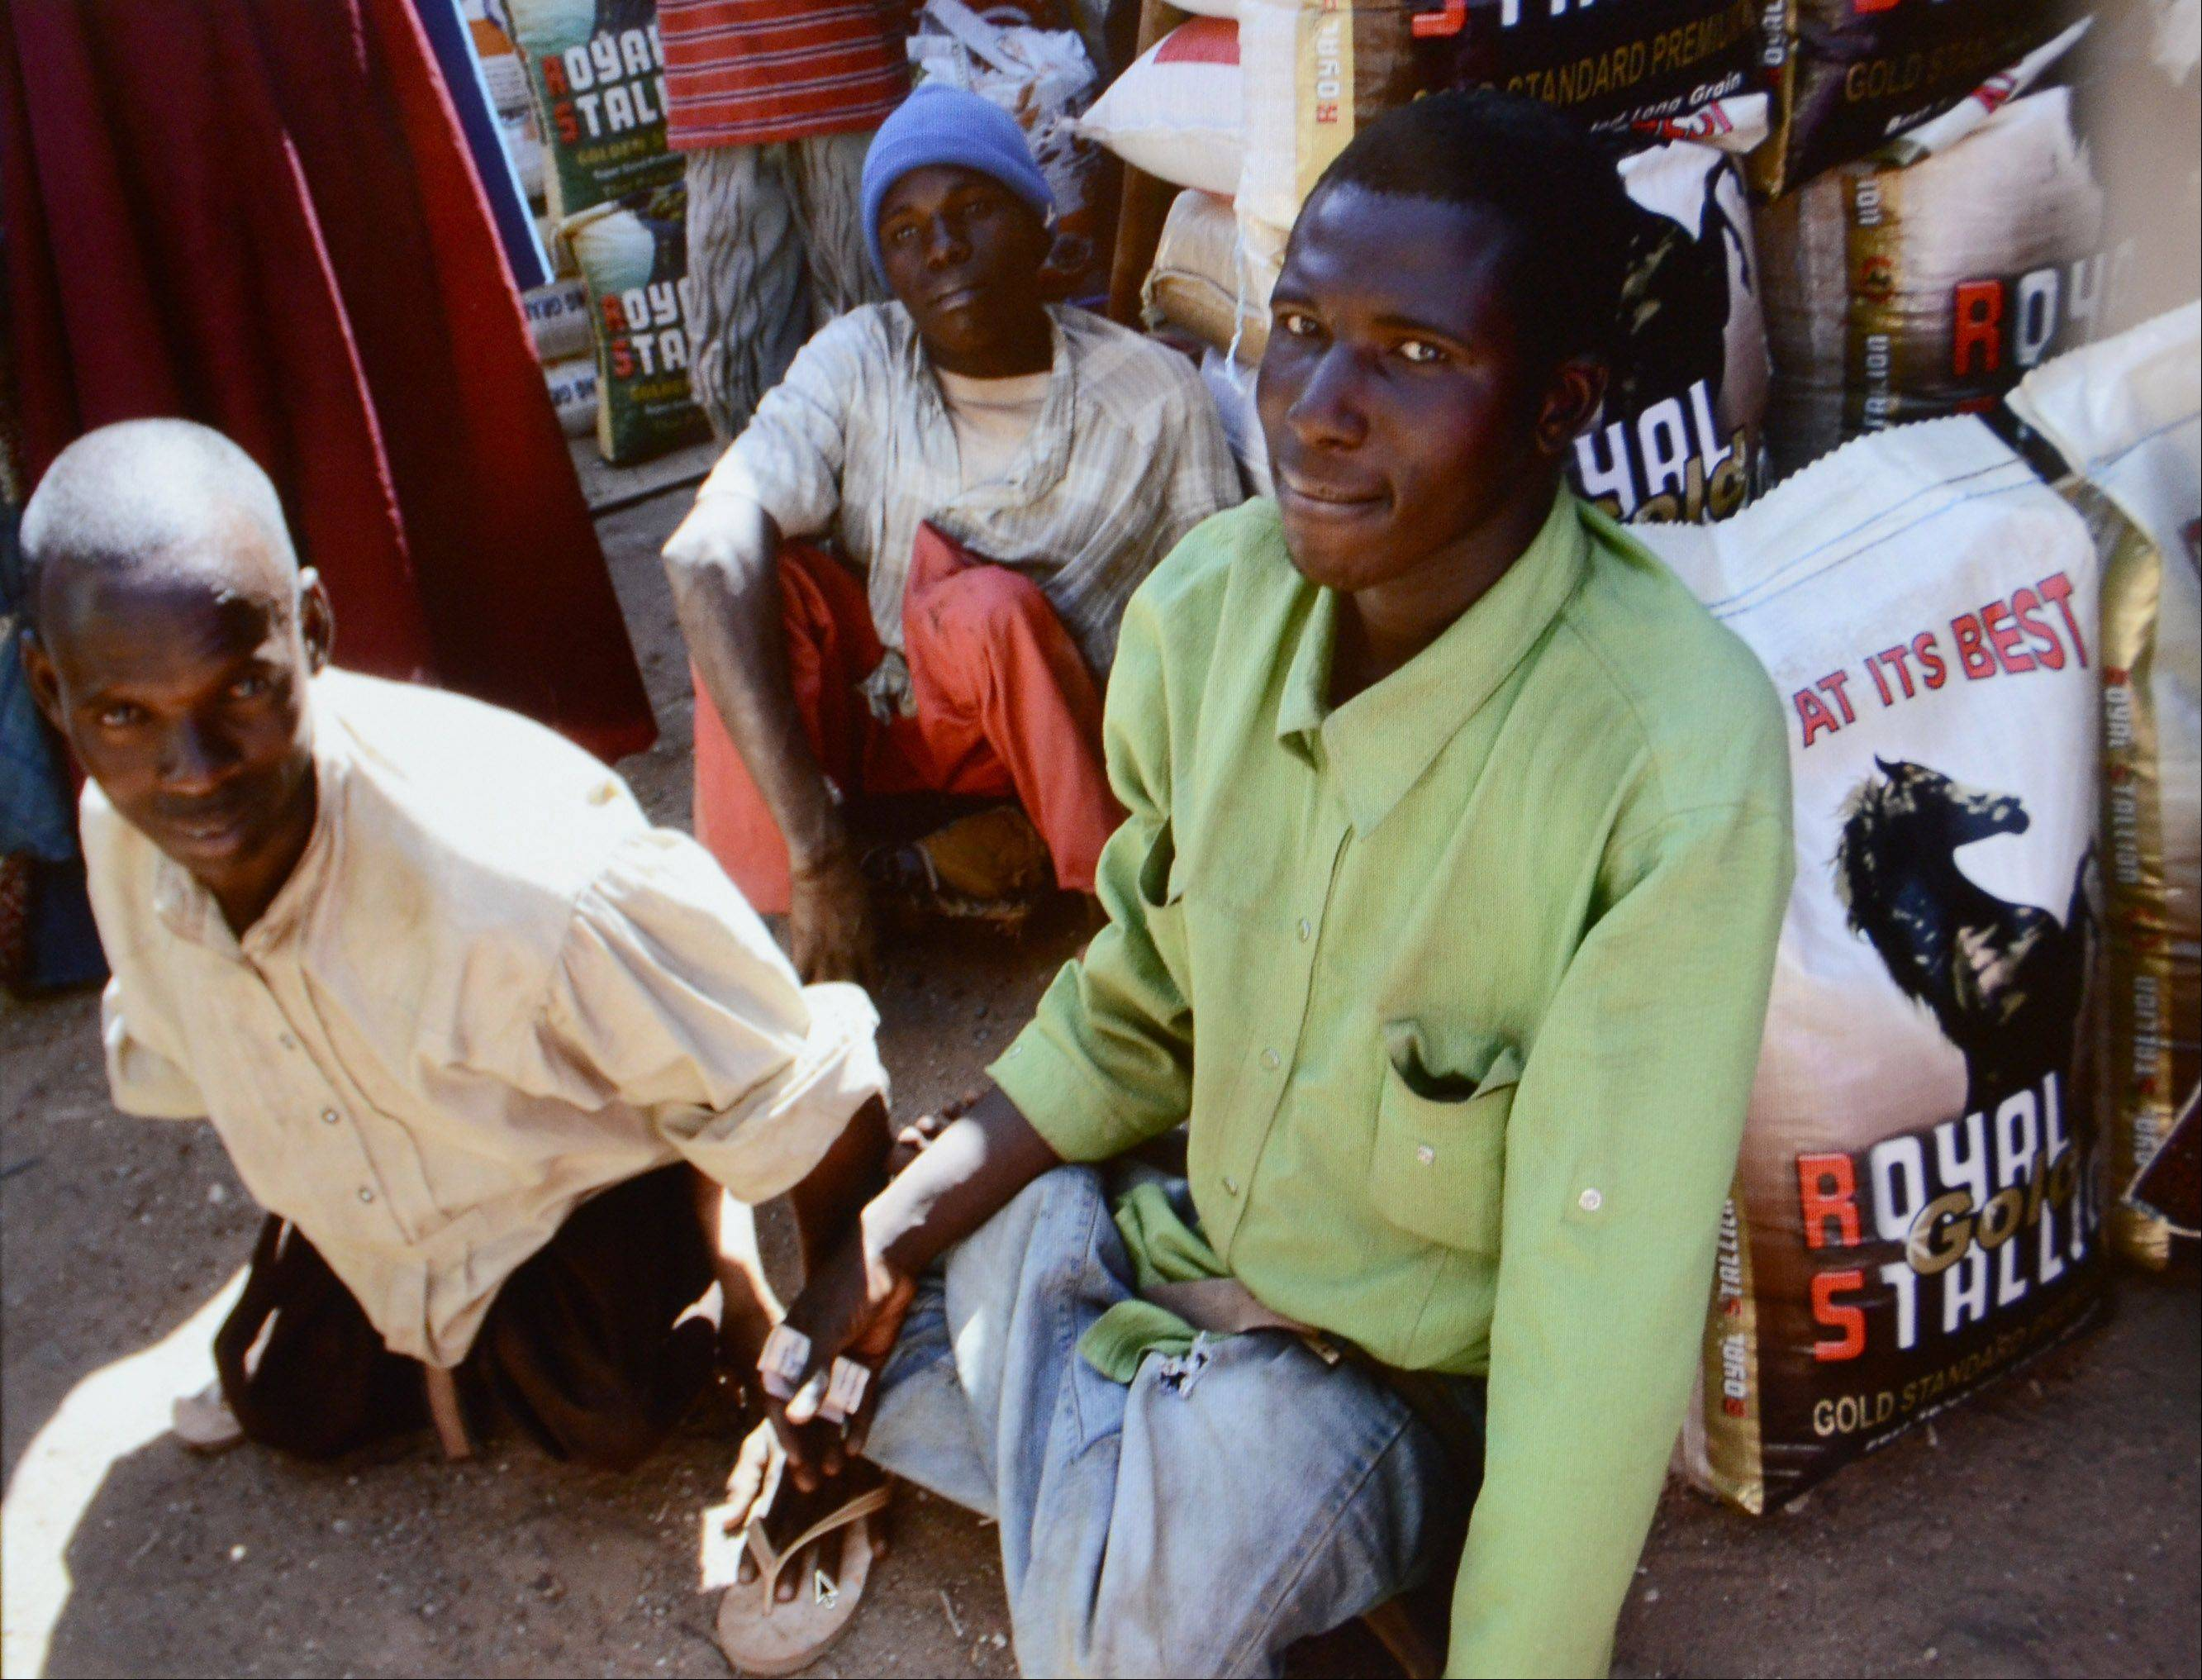 Polio survivors sit on the ground in a market in Nigeria.